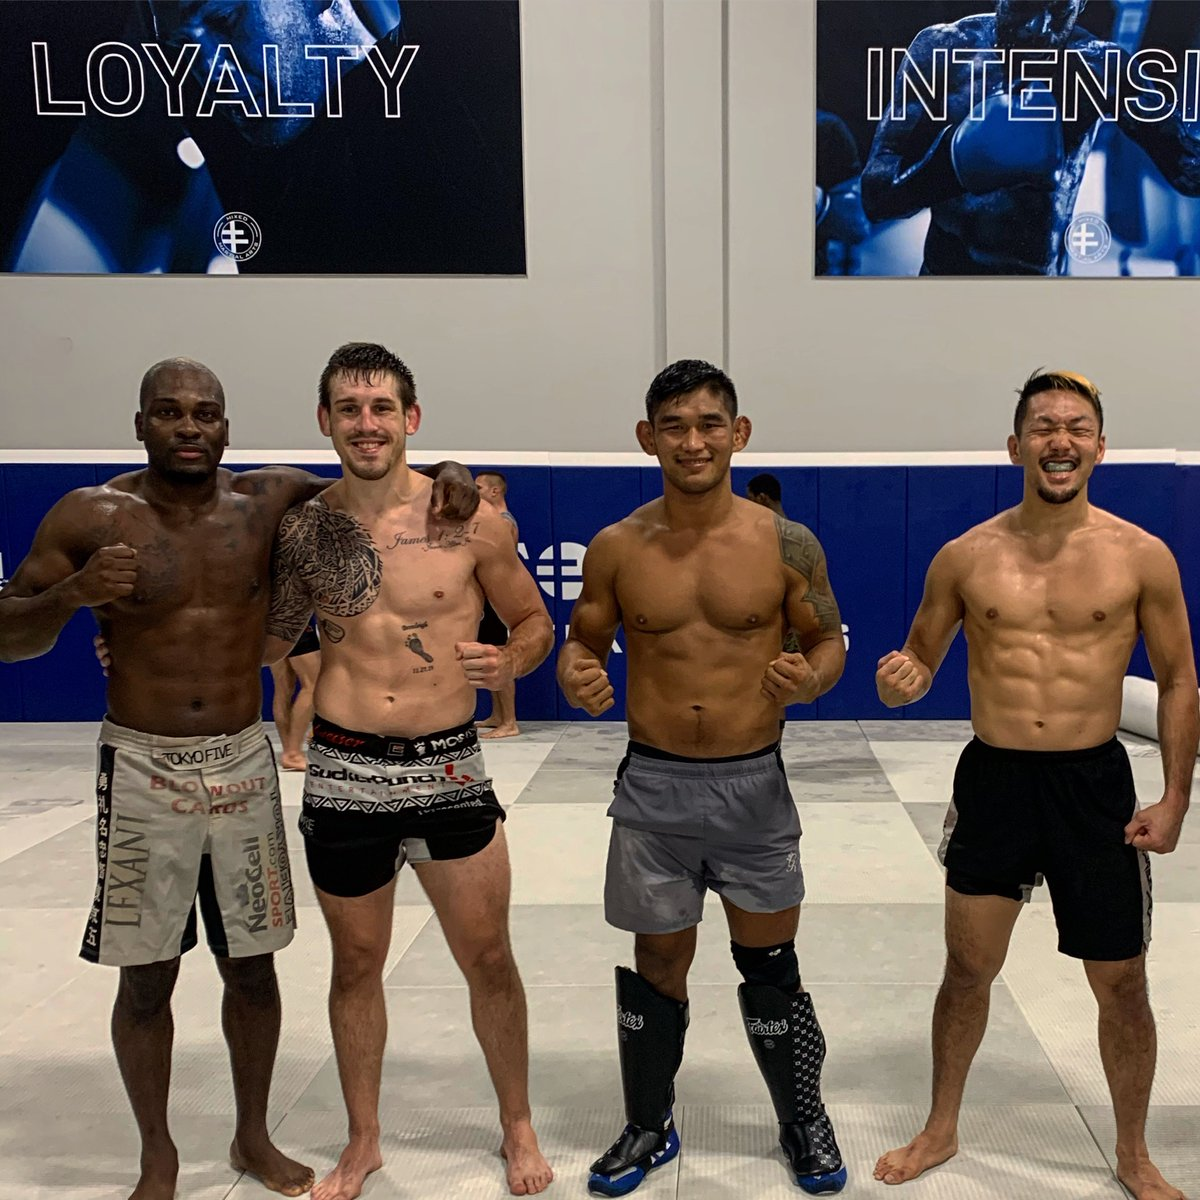 Did my last rounds with these three before I fly ✈️ out to Singapore 🇸🇬!  Our fight Island 🏝 . Thank you so much! @DerekBrunson @BrendanAllenMMA @satotenten and all my teammates at @MmaSanford 🙏🏽🙏🏽🙏🏽our trainers @henrihooft @CoachGJones @DrCPeacock Kami @BurnsBJJ @Vagner_Rocha https://t.co/UiLmnImnCH